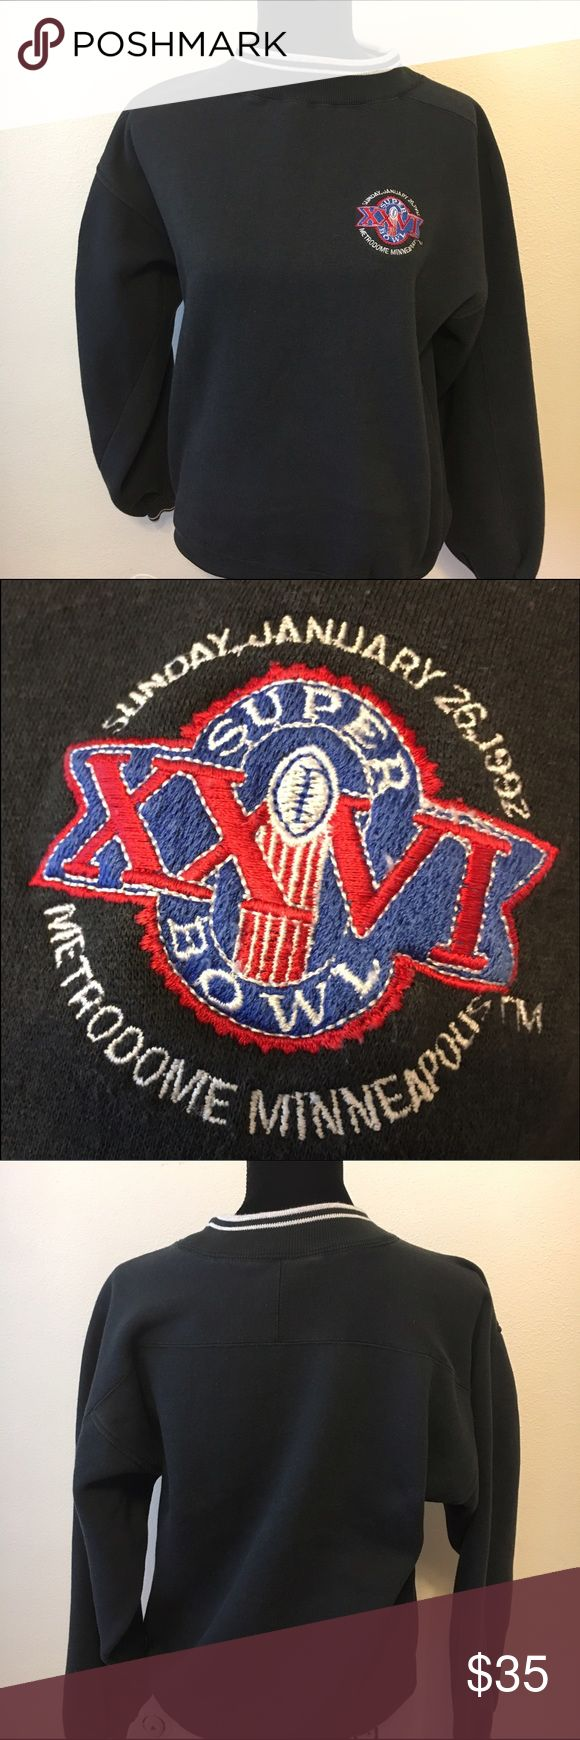 Vintage Super Bowl 26 sweatshirt. 1992 metrodome Vintage super bowl XXVI metrodome Minneapolis. 1992. In good condition. Slightly faded from time. Very soft inside. 21 inches arm to arm and 24 shoulder to hem. Size medium unisex. Throwback retro flashback. Vintage Tops Sweatshirts & Hoodies